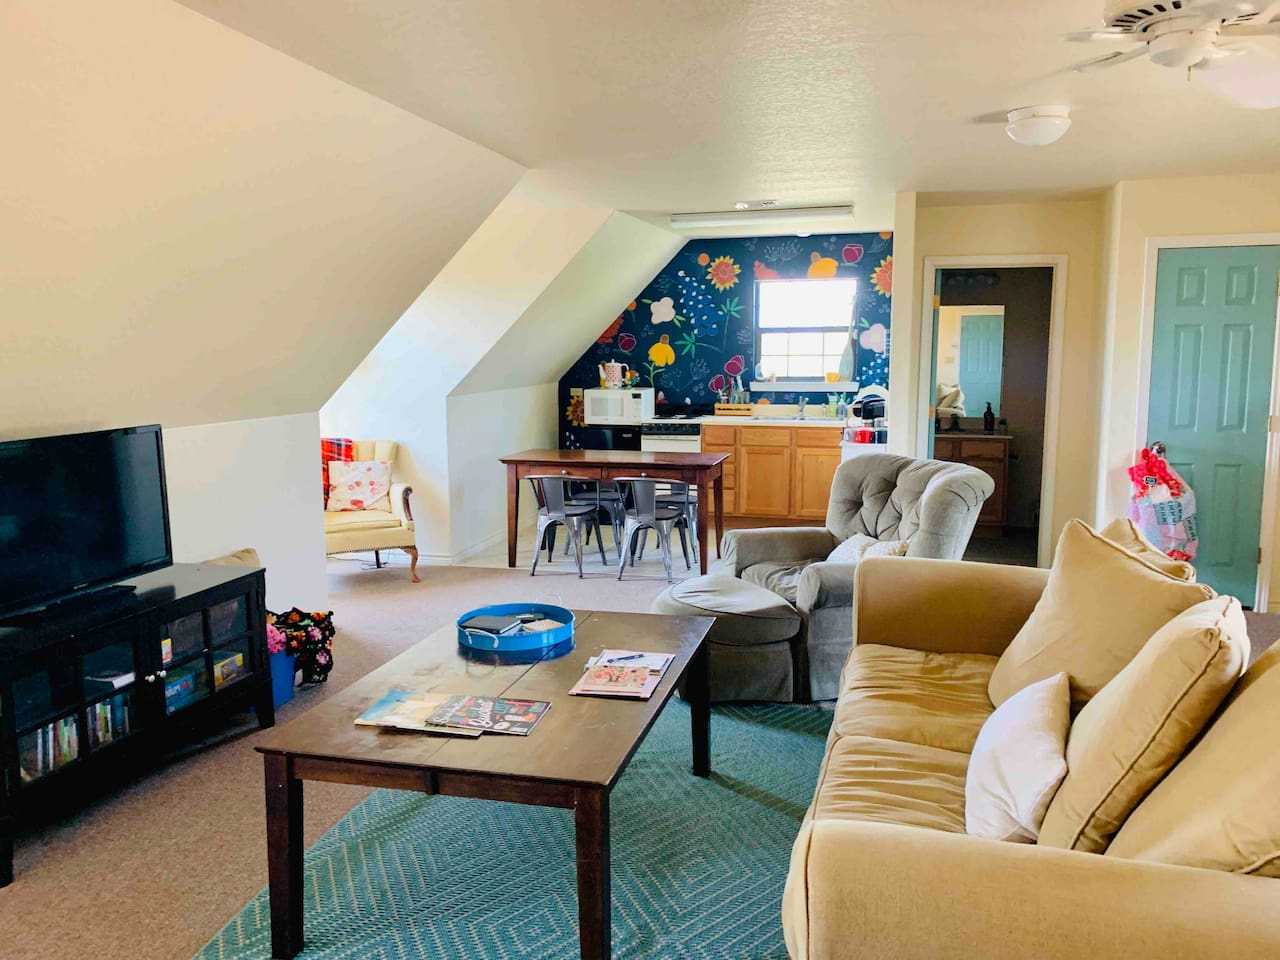 Living area and kitchenette. This studio apartment is 700 square feet and is just right for a cozy stay for couples or small families.